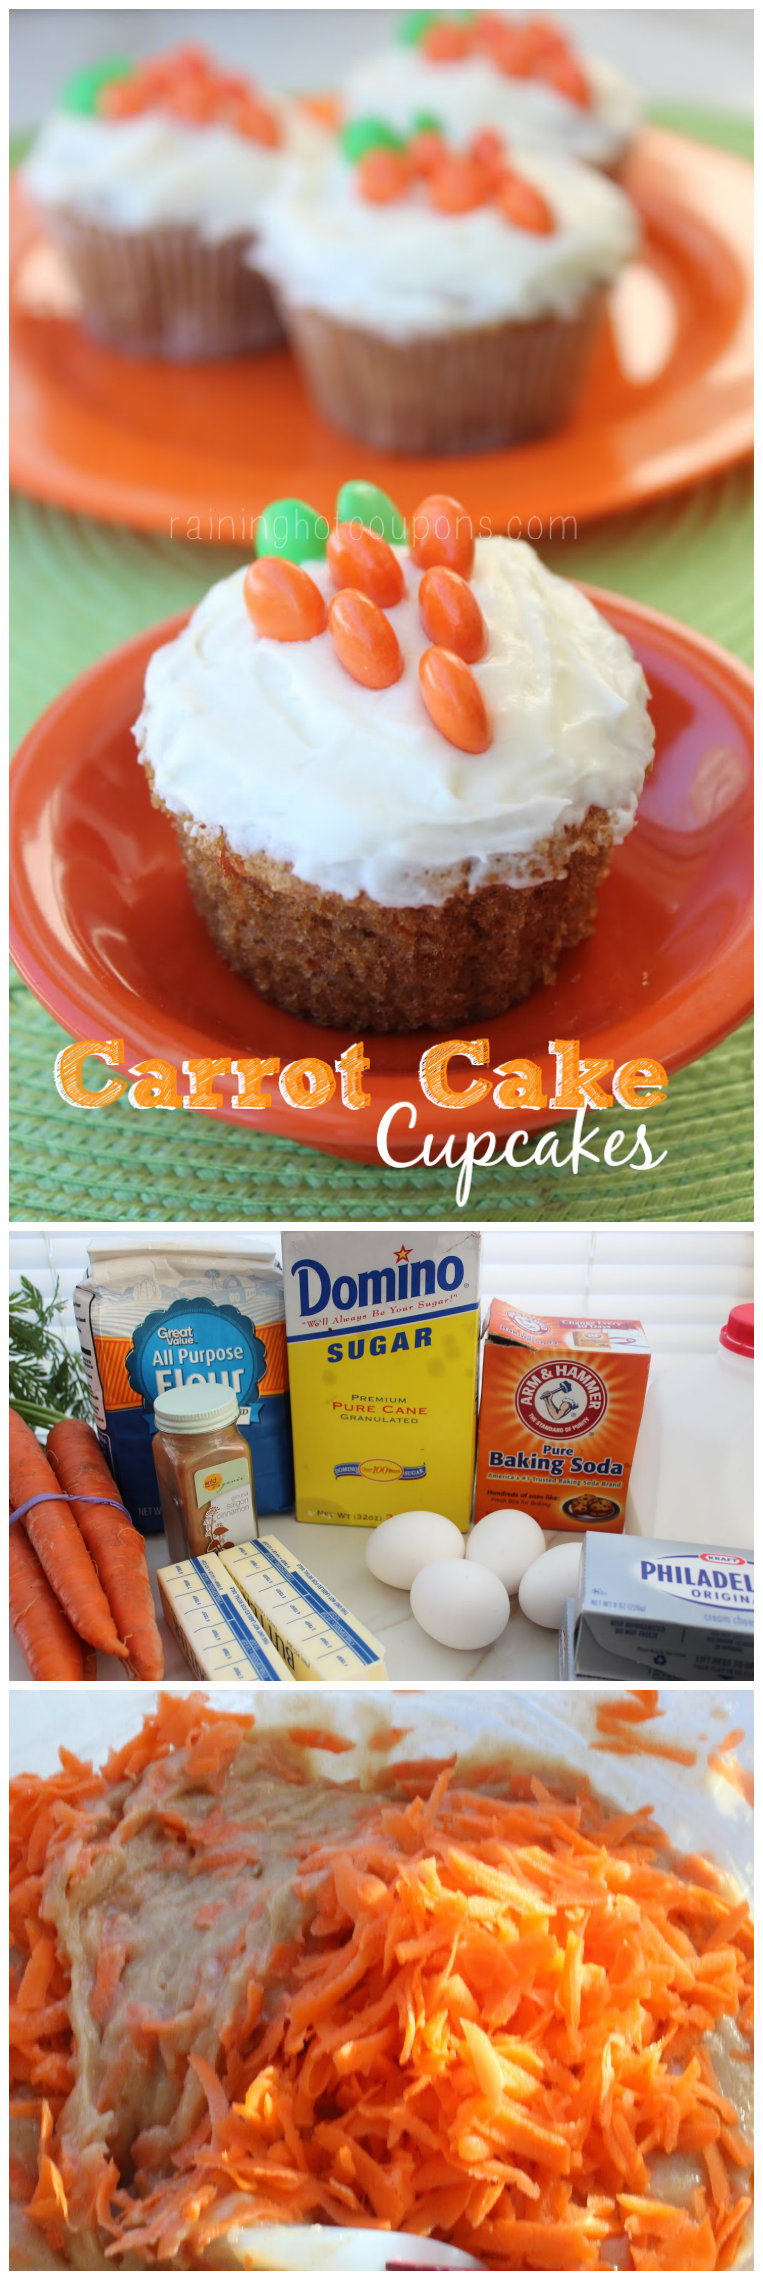 carrot cake cupcakes collage